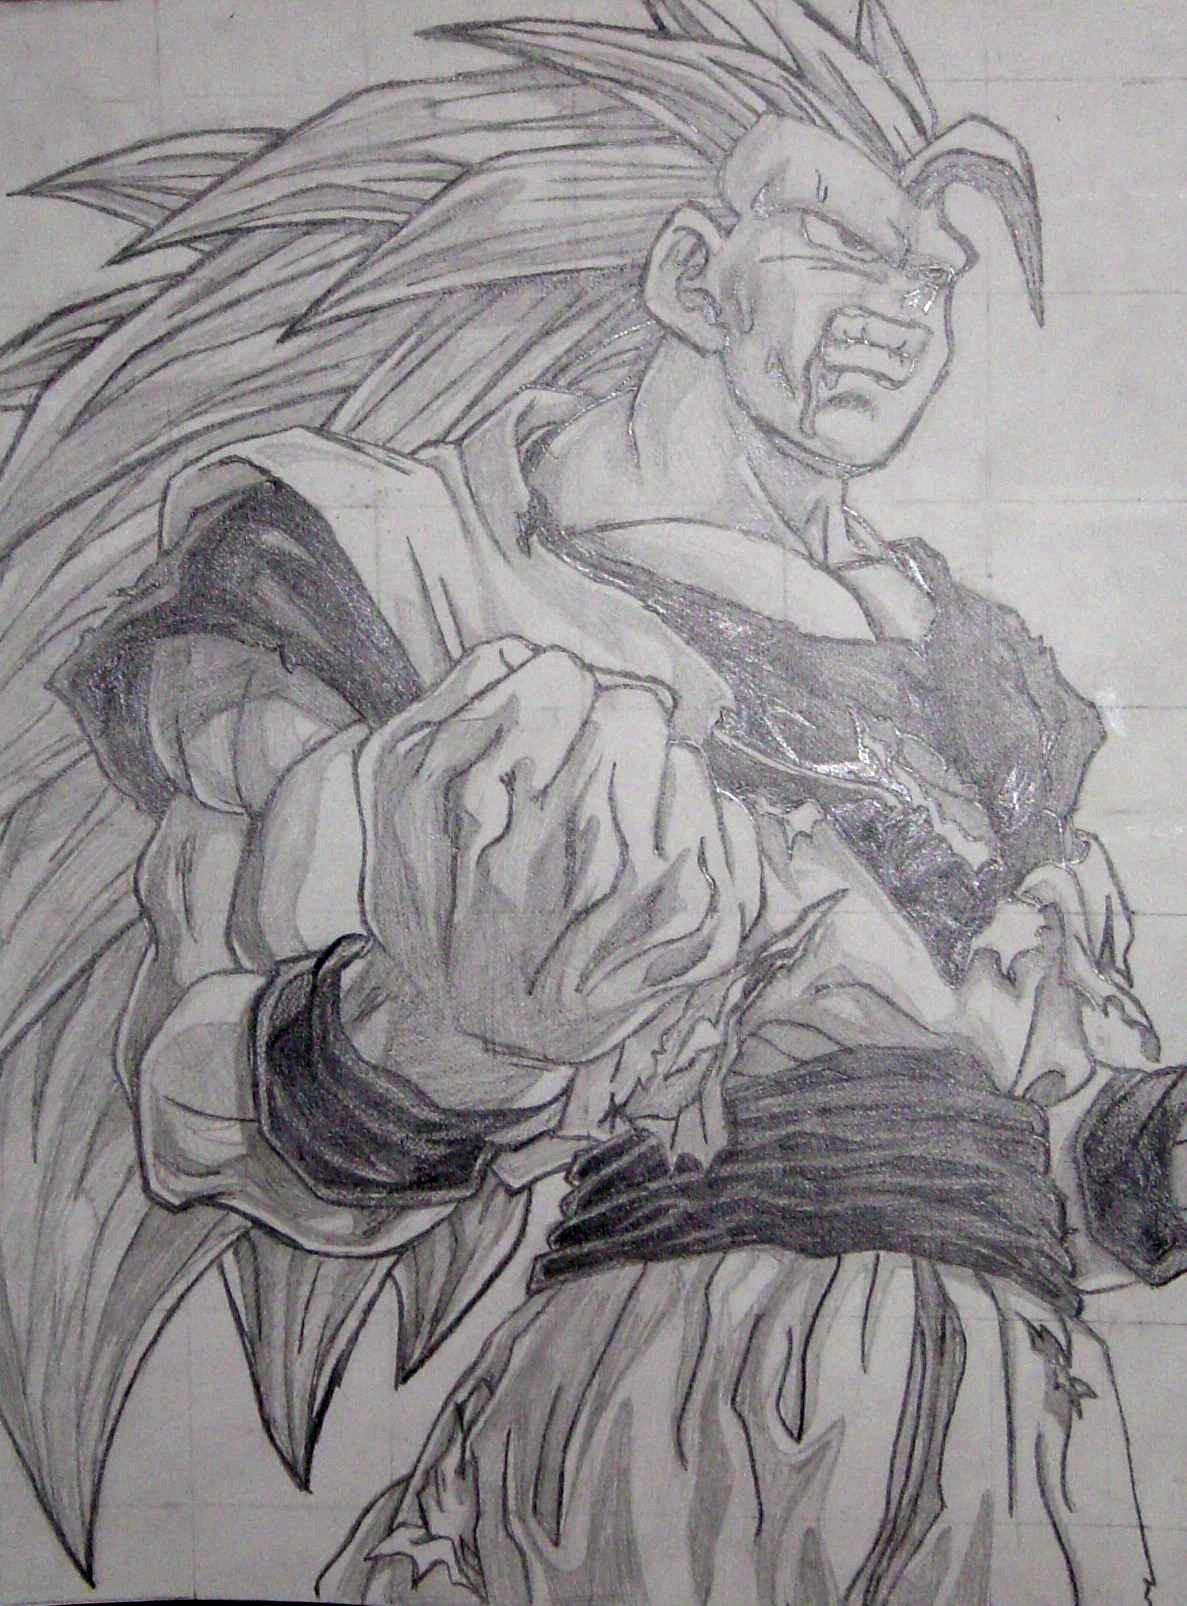 Dragon ball z by tat2chick on deviantart for Cool detailed drawings